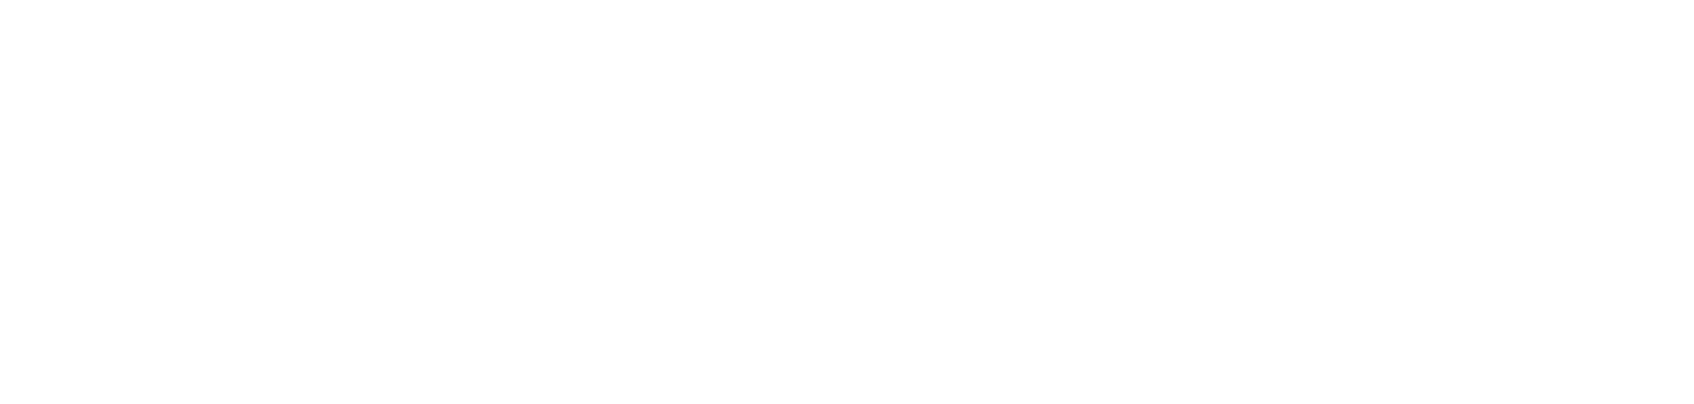 KOUKAAM Distribution